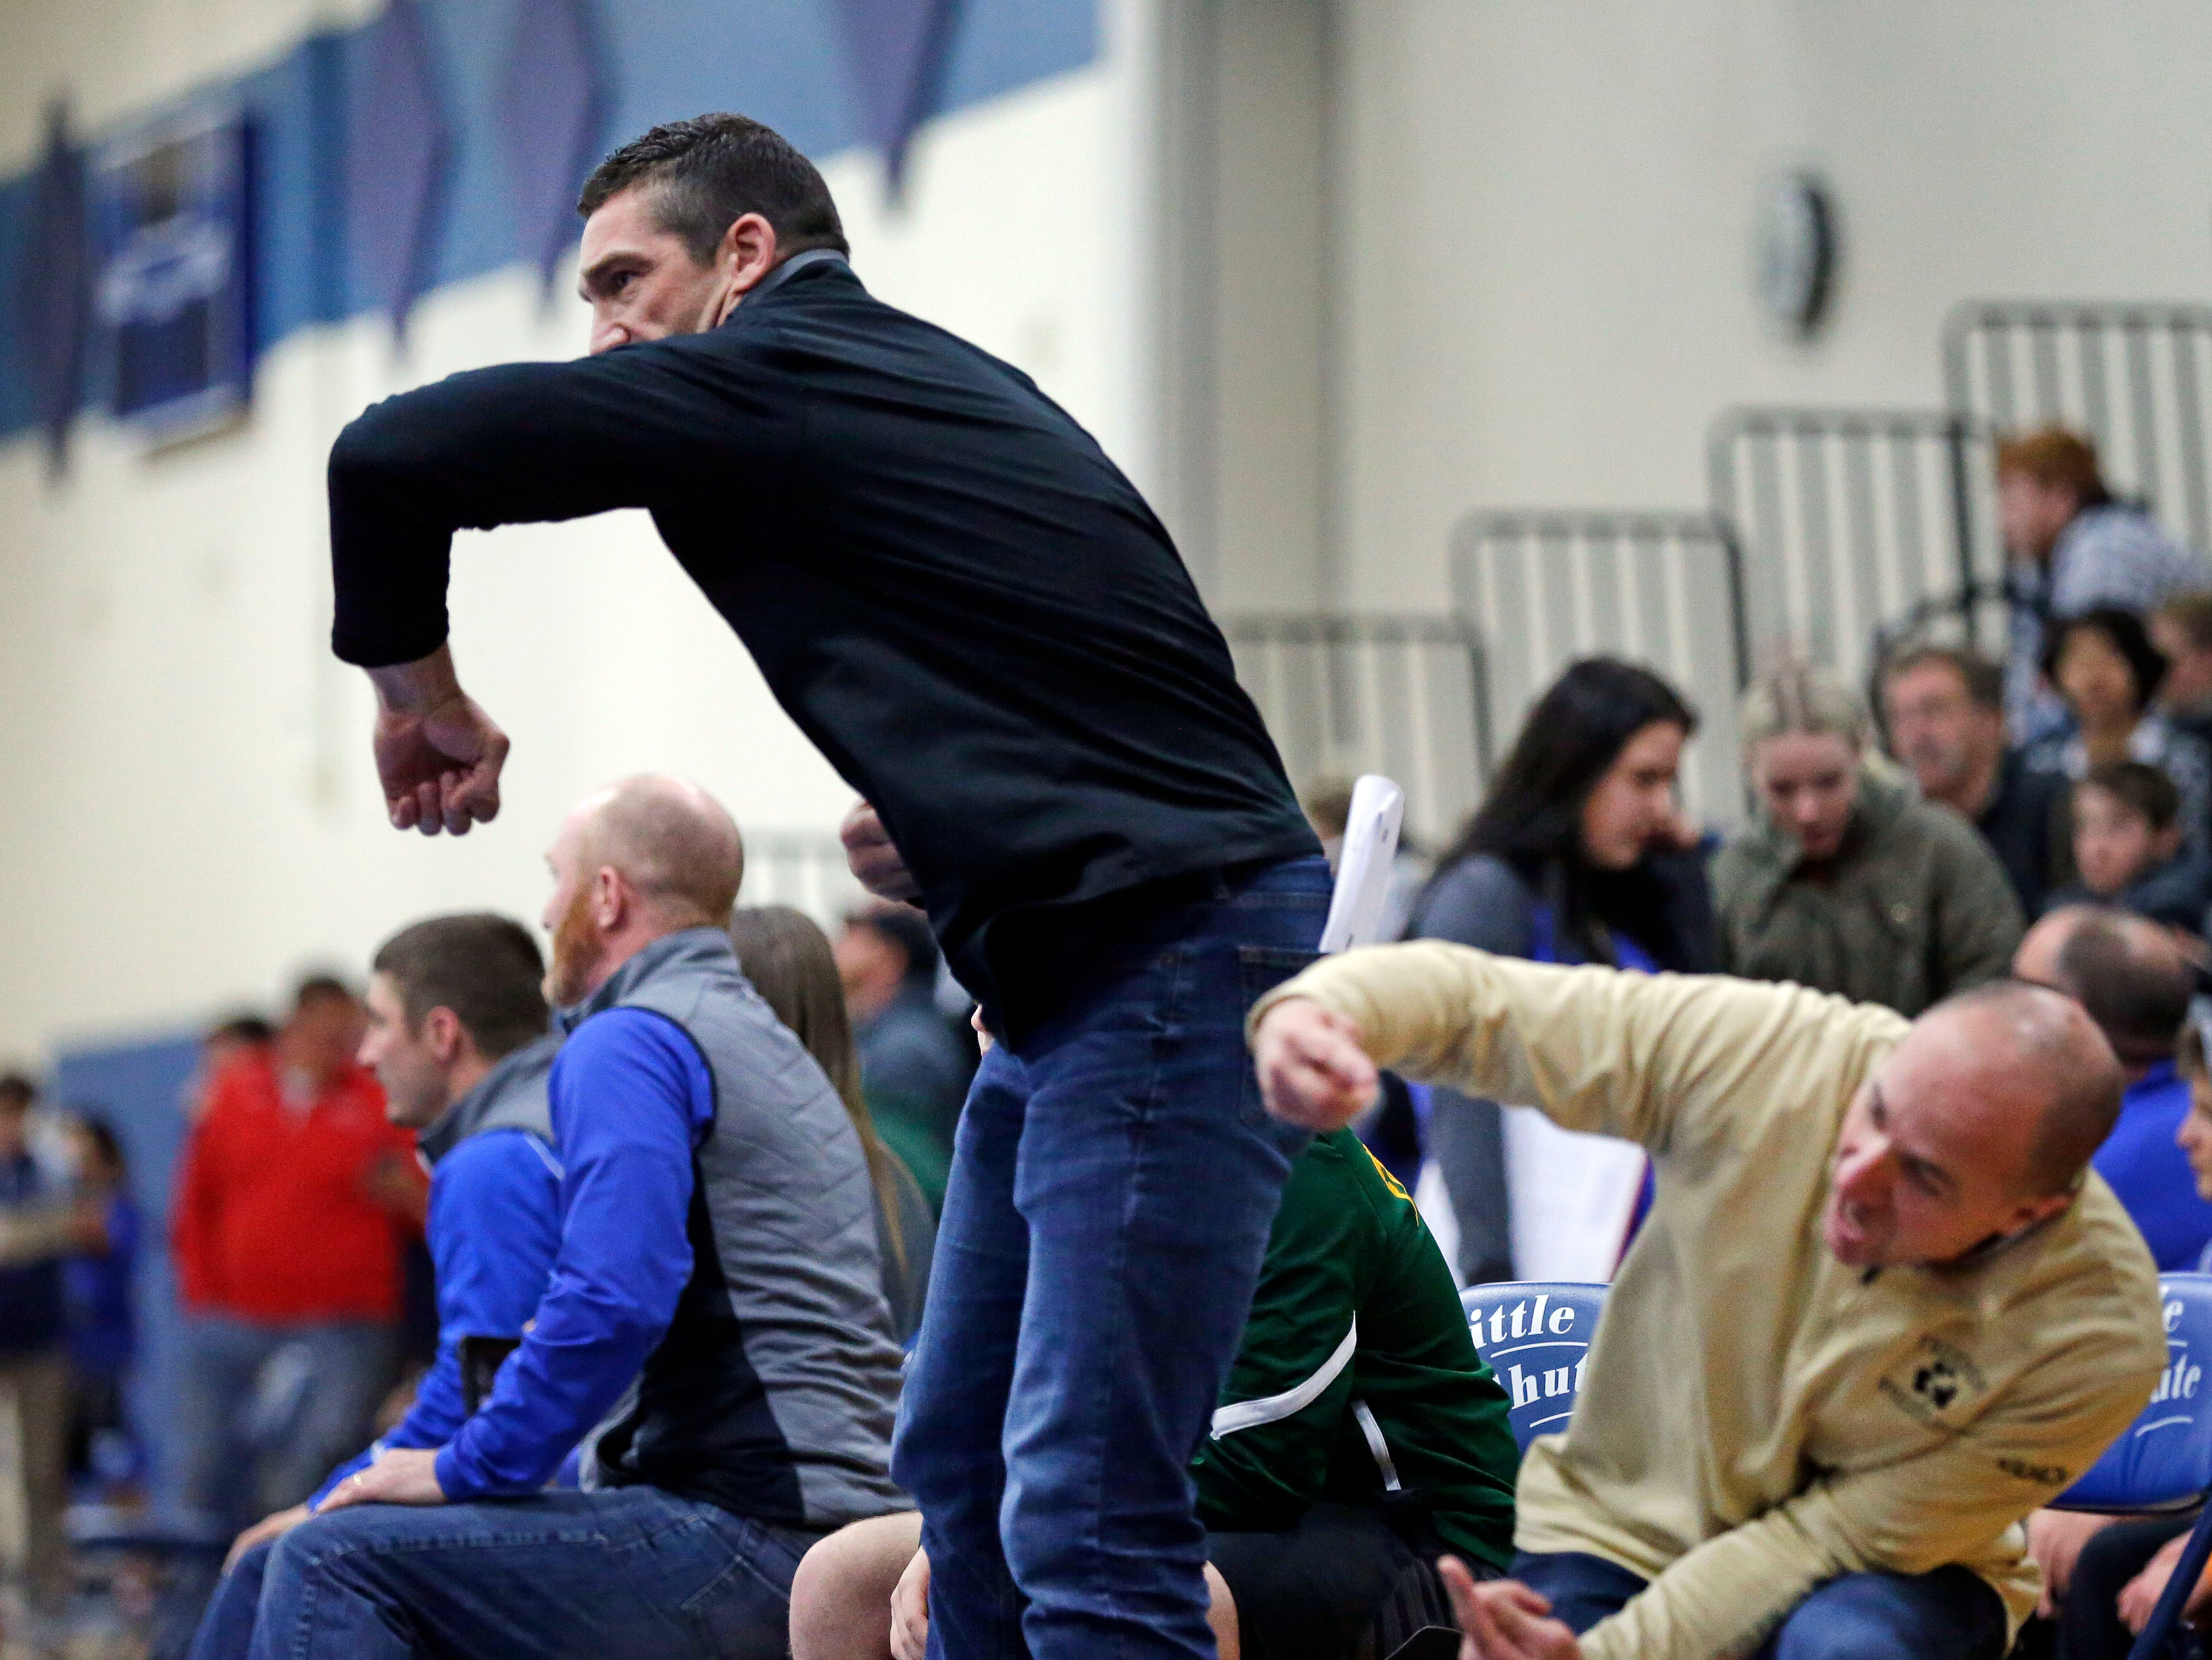 Freedom coaches give instructions to a wrestler during the Sgt. Nick Mueller Memorial Wrestling Tournament Saturday, December 1, 2018, at Little Chute High School in Little Chute, Wis.